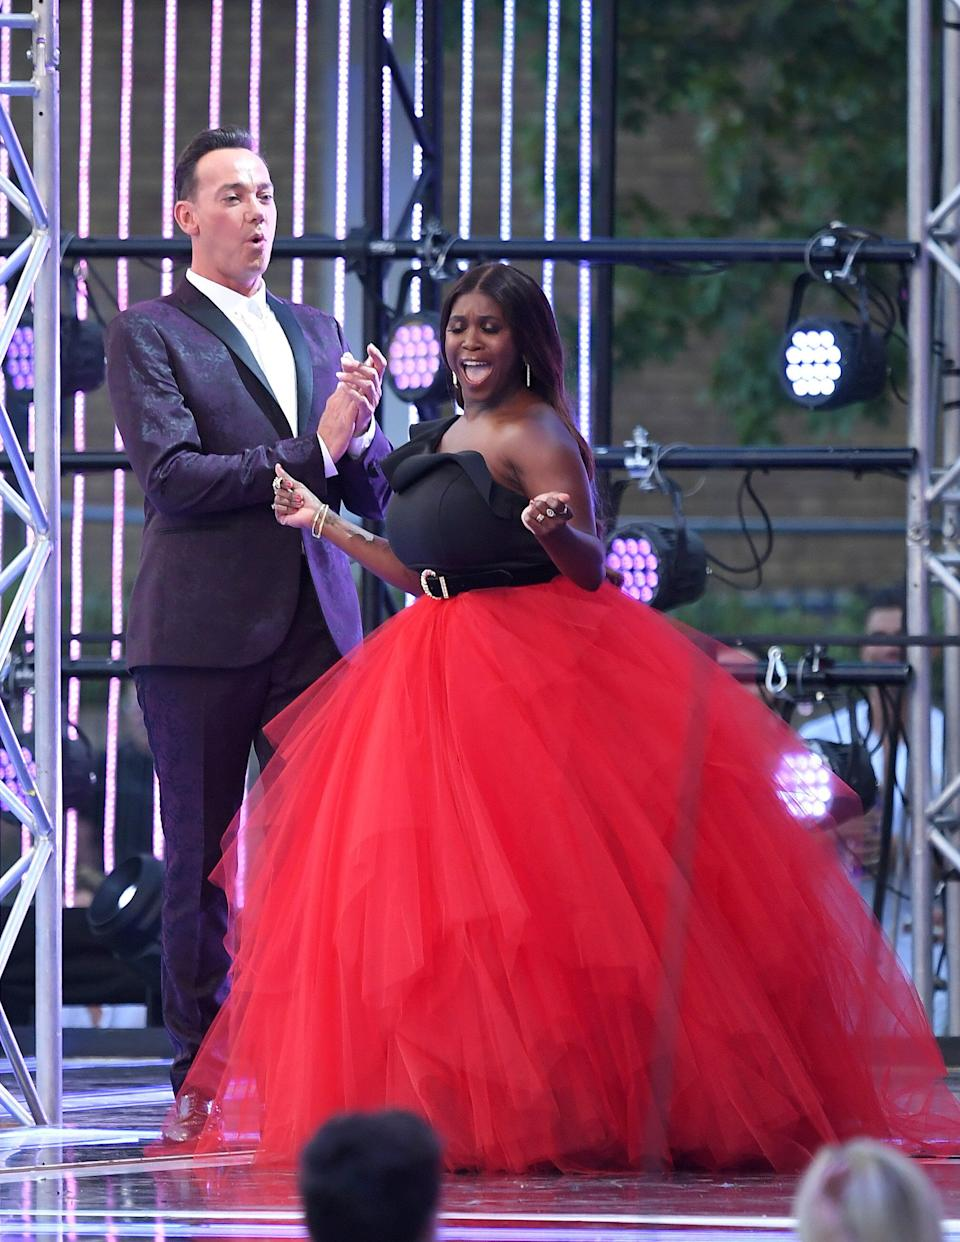 """LONDON, ENGLAND - AUGUST 26: Judges Craig Revel Horwood and Motsi Mabuse attend the """"Strictly Come Dancing"""" launch show red carpet arrivals at Television Centre on August 26, 2019 in London, England. (Photo by Karwai Tang/WireImage)"""